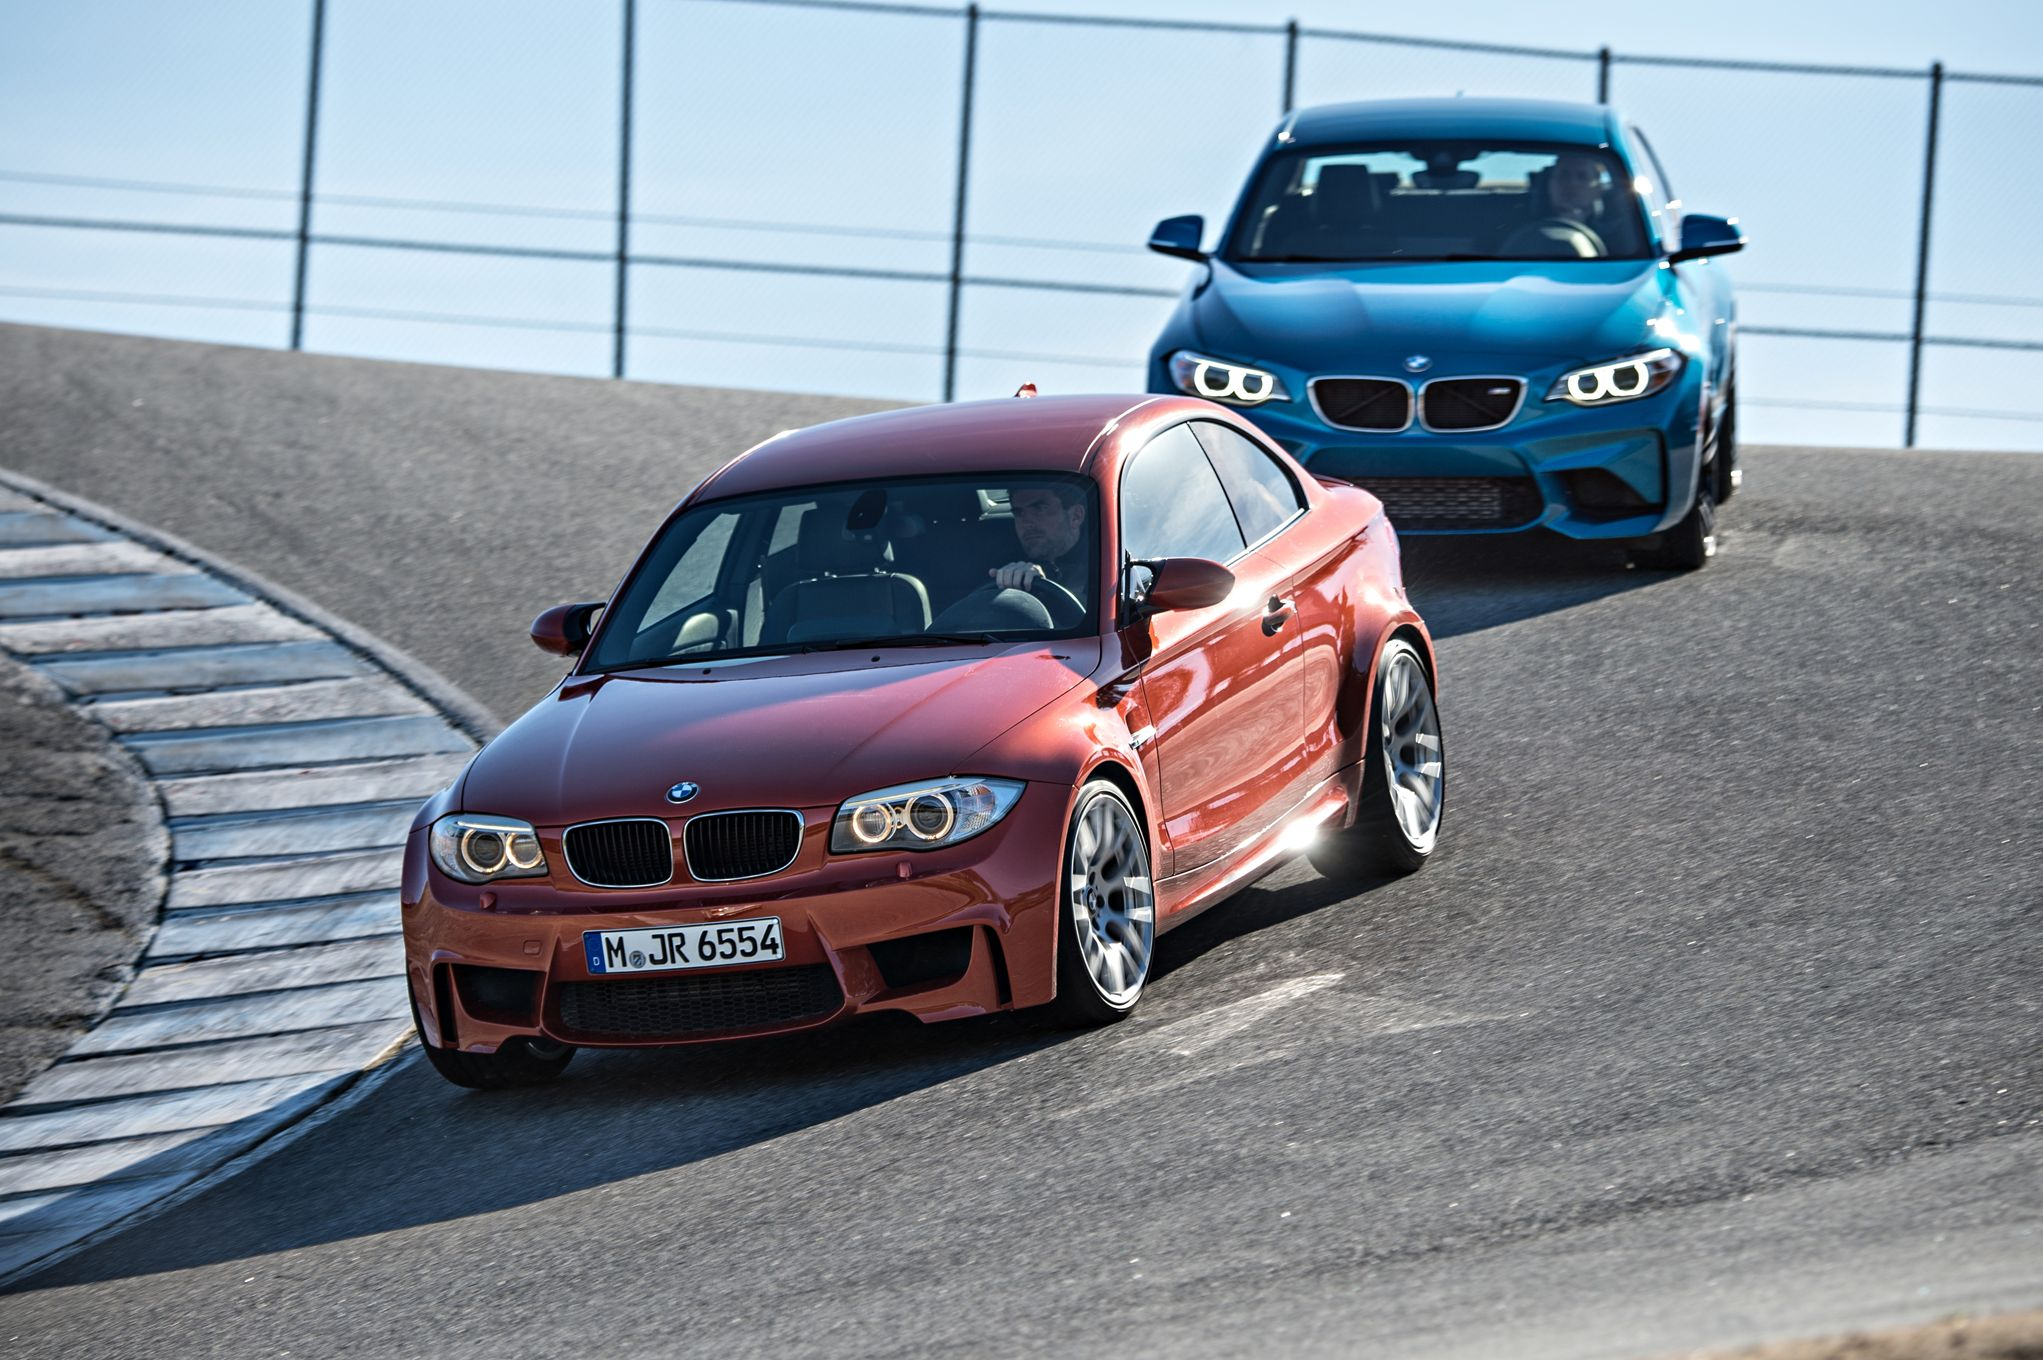 2016-bmw-m2-bmw-1-series-m-coupe-front-three-quarter-in-motion-02.jpg